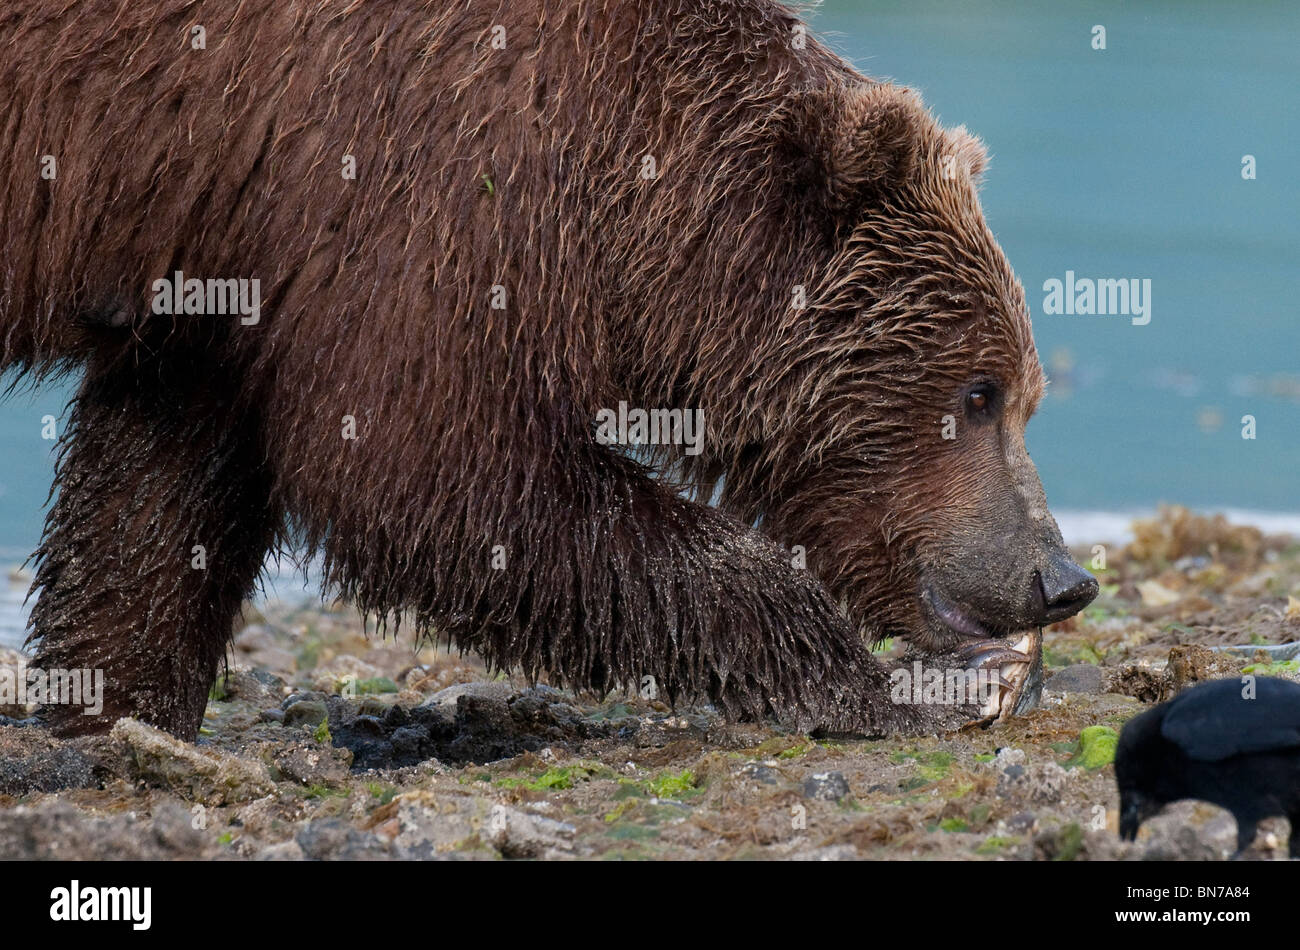 Brown bear prys open a clam in Geographic Harbor, Katmai National Park, Alaska - Stock Image